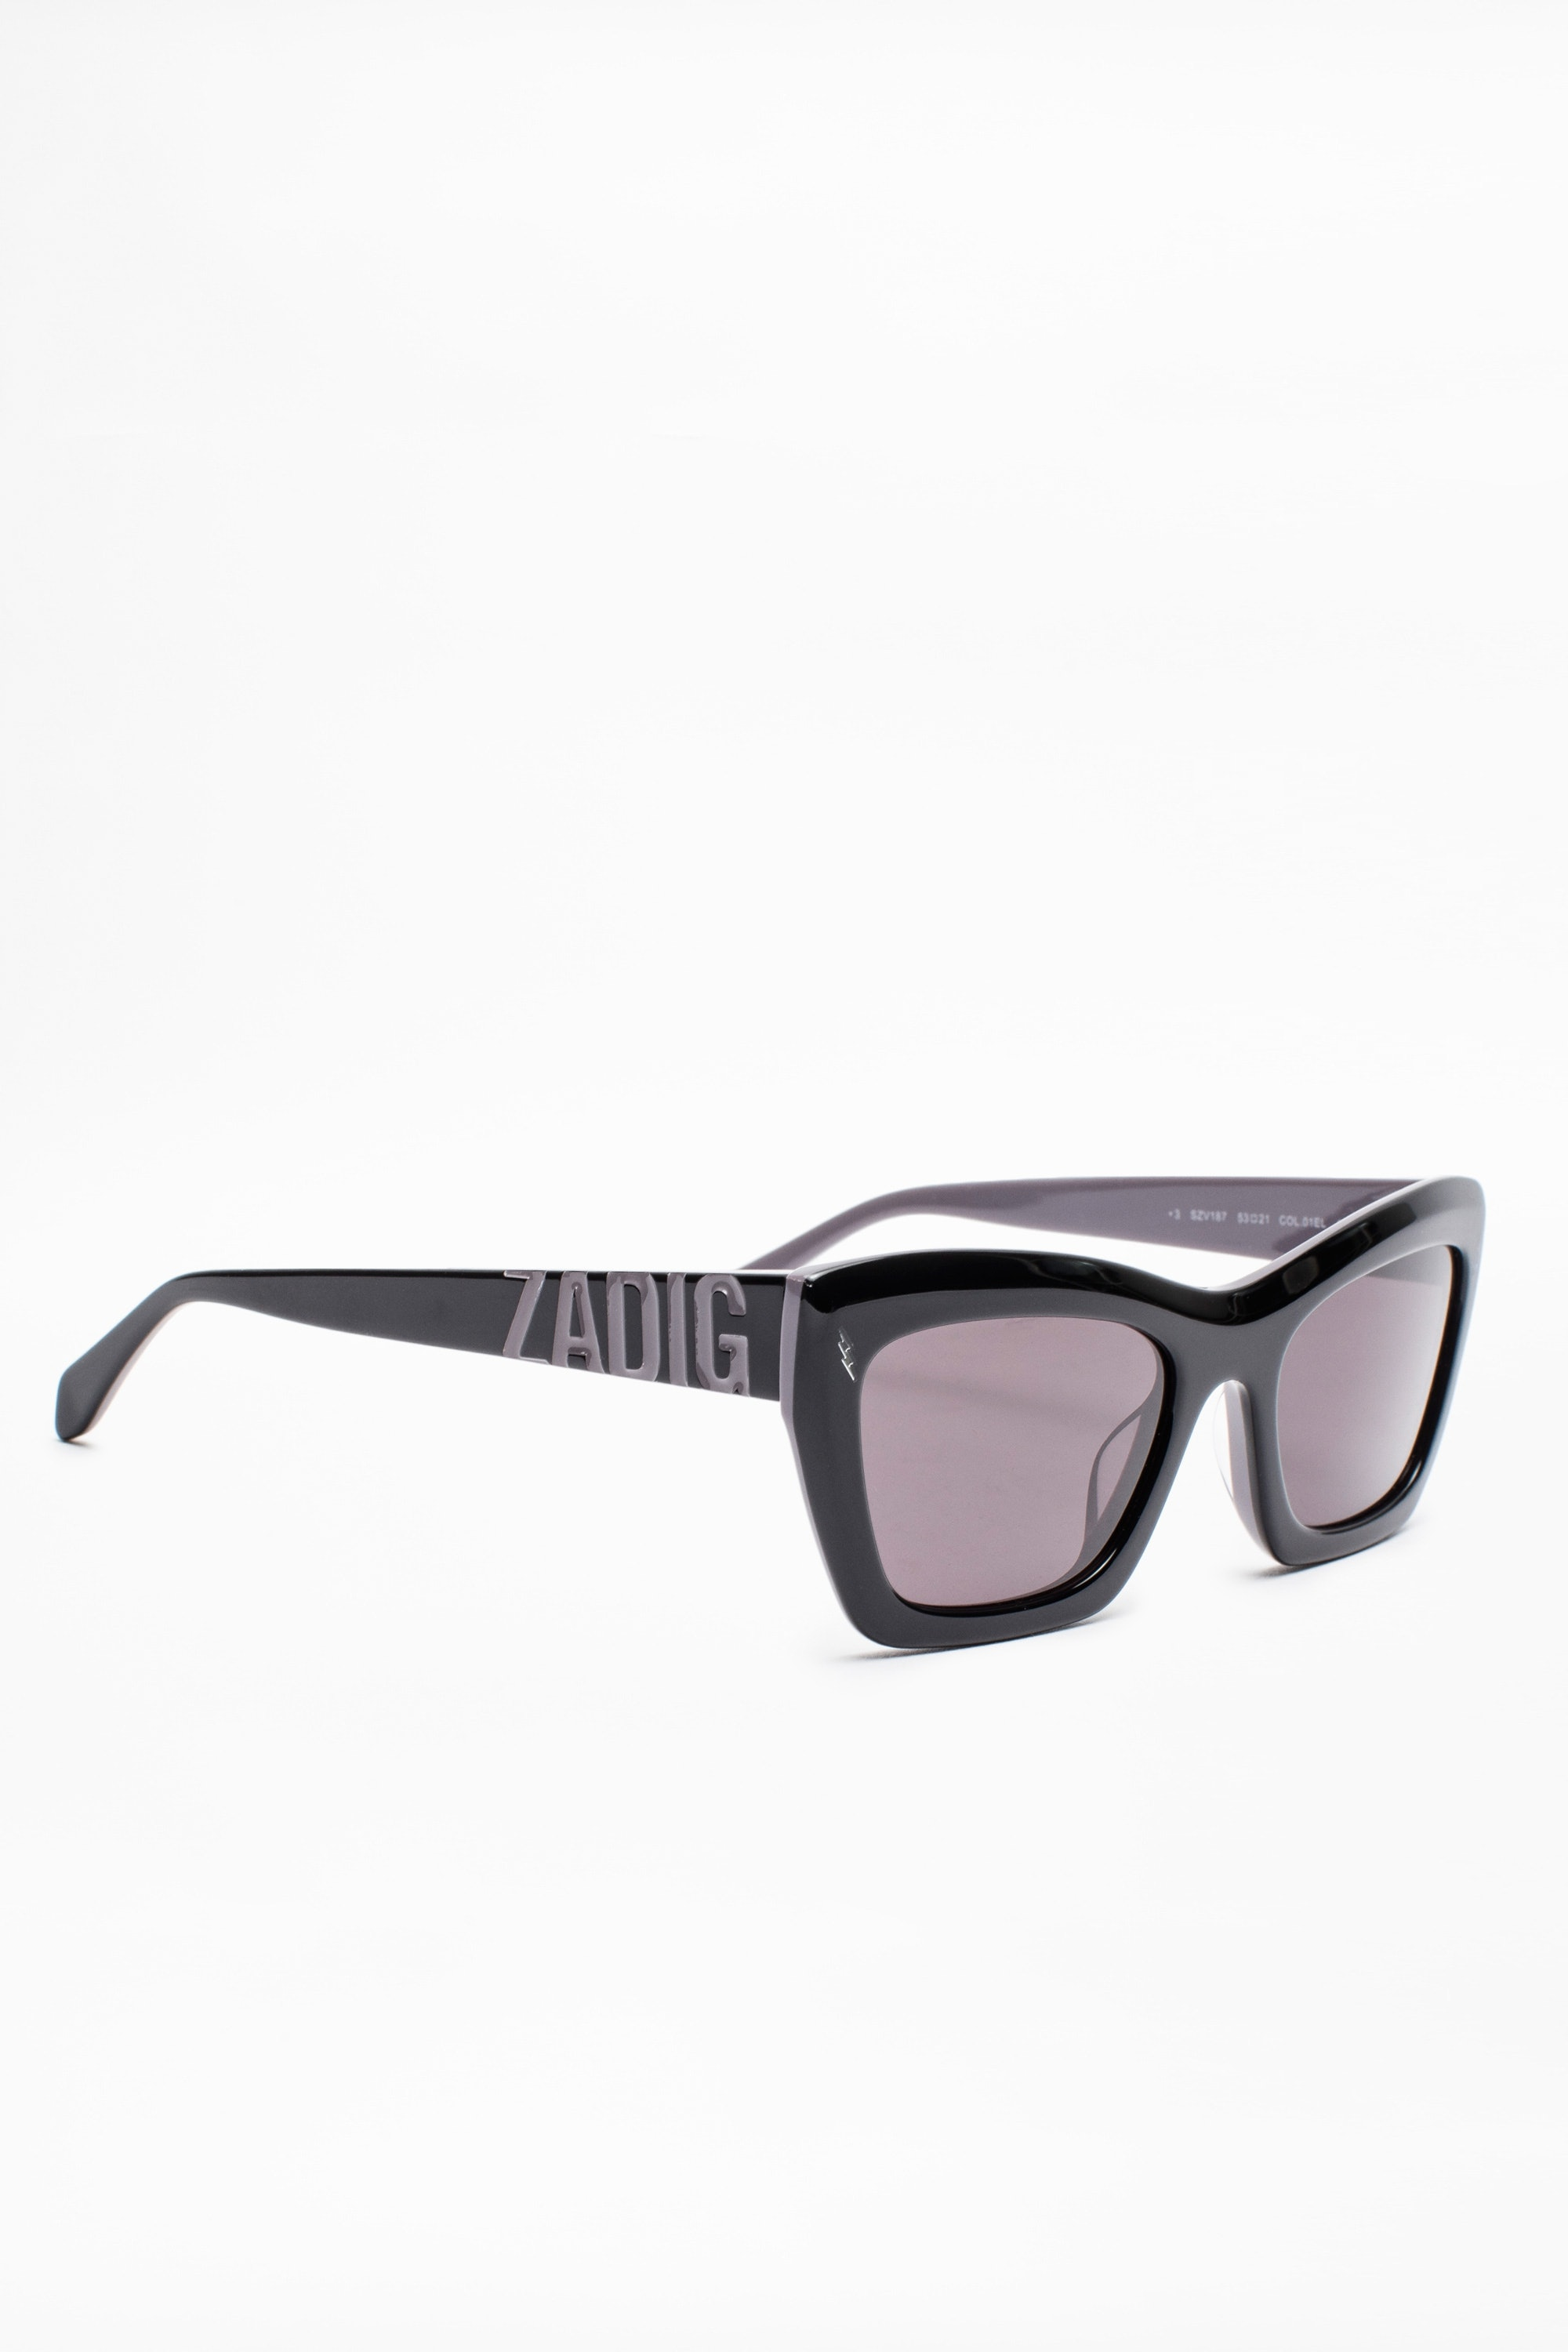 SZV187 Sunglasses